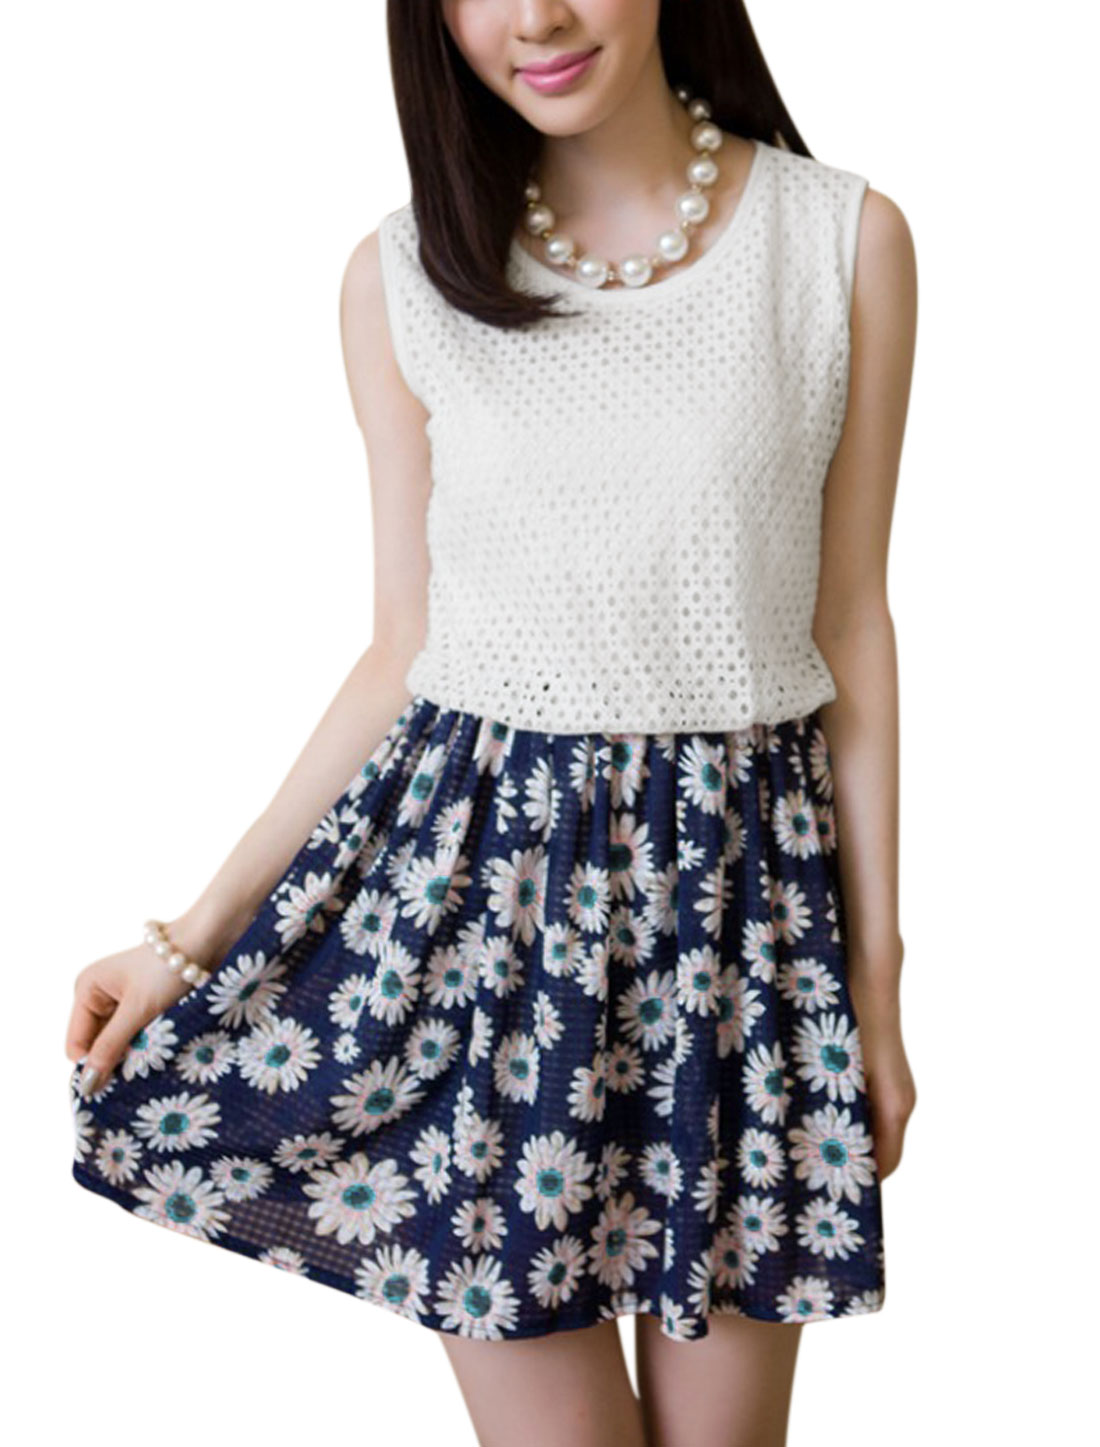 Lady Hollow Out Design Floral Prints Fully Lined Dress Navy Blue S